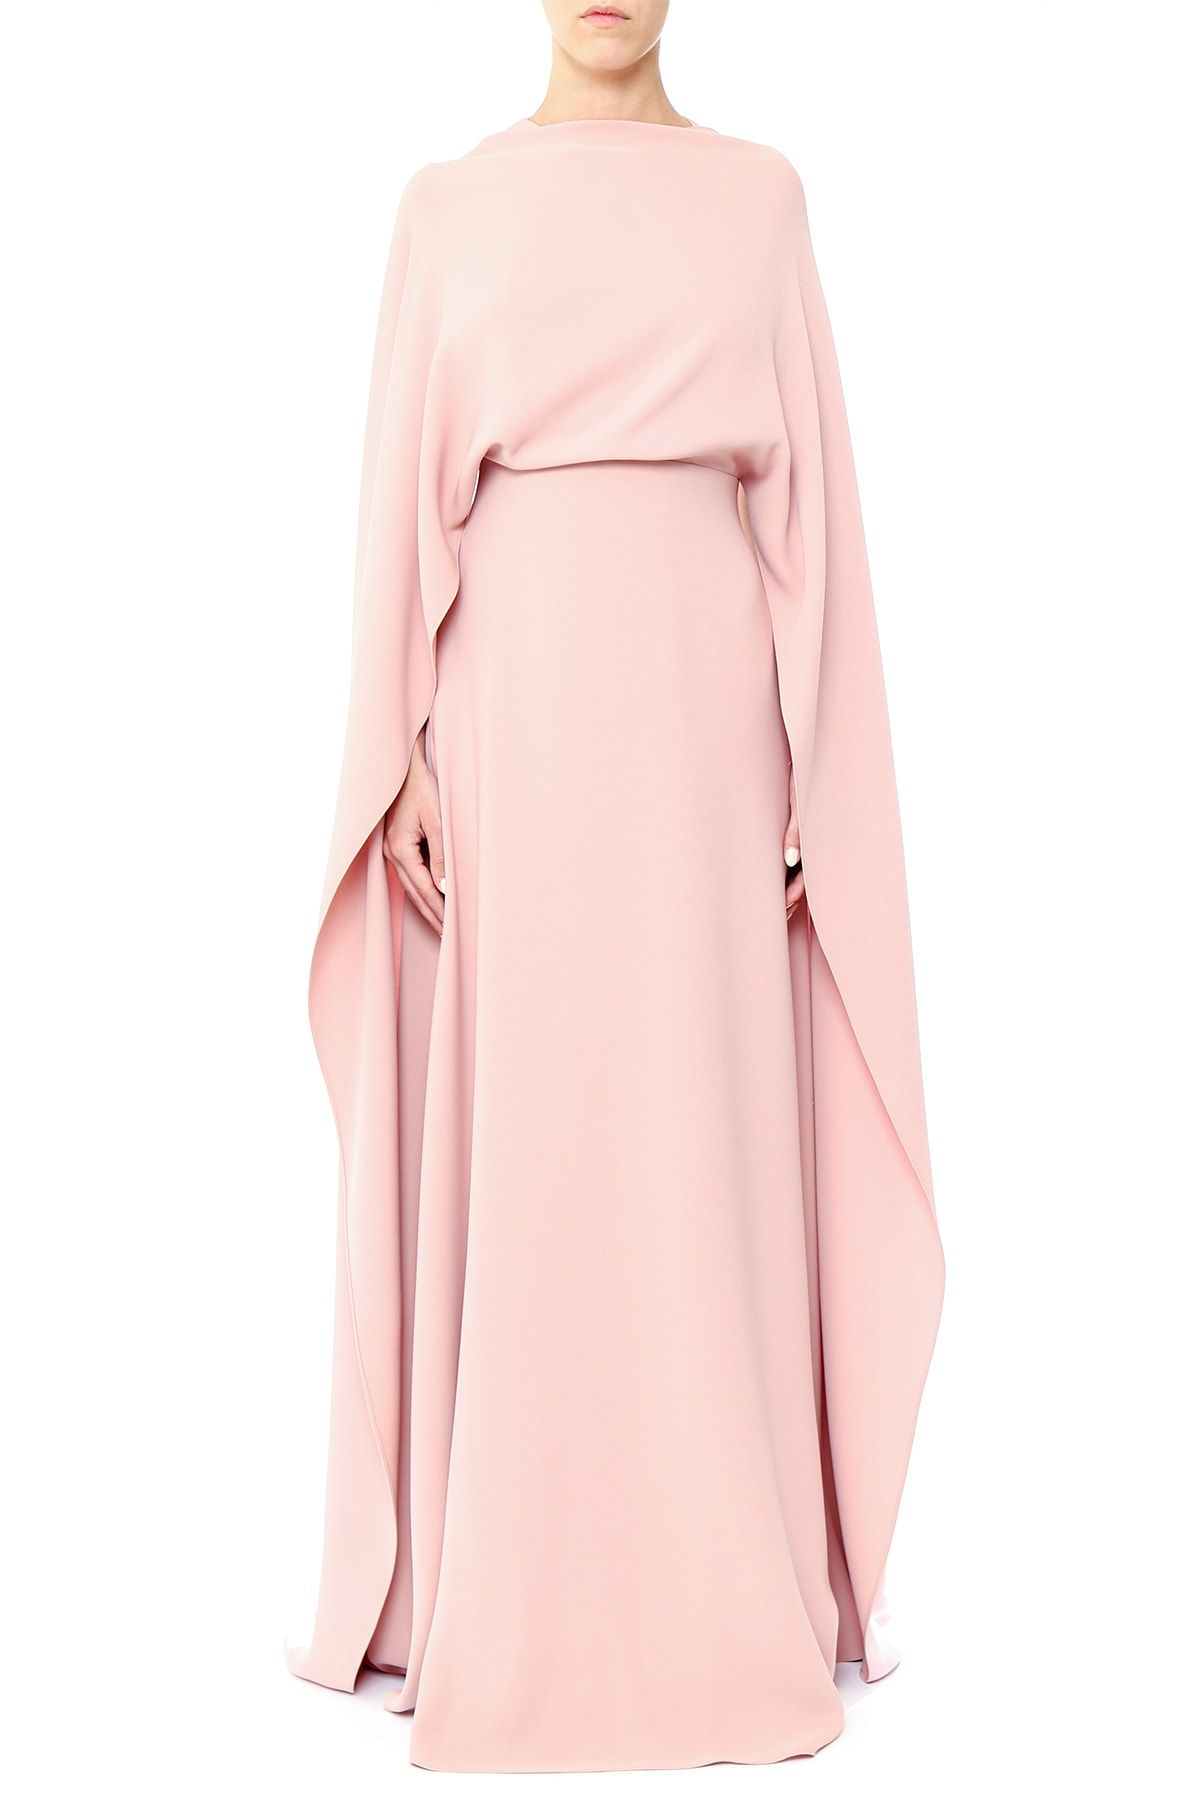 59825f457c2 VALENTINO Long dress realized in pure silk with very long cape sleeves. The  model presents round-neck and fully uncovered back enriched by thin straps  and a ...